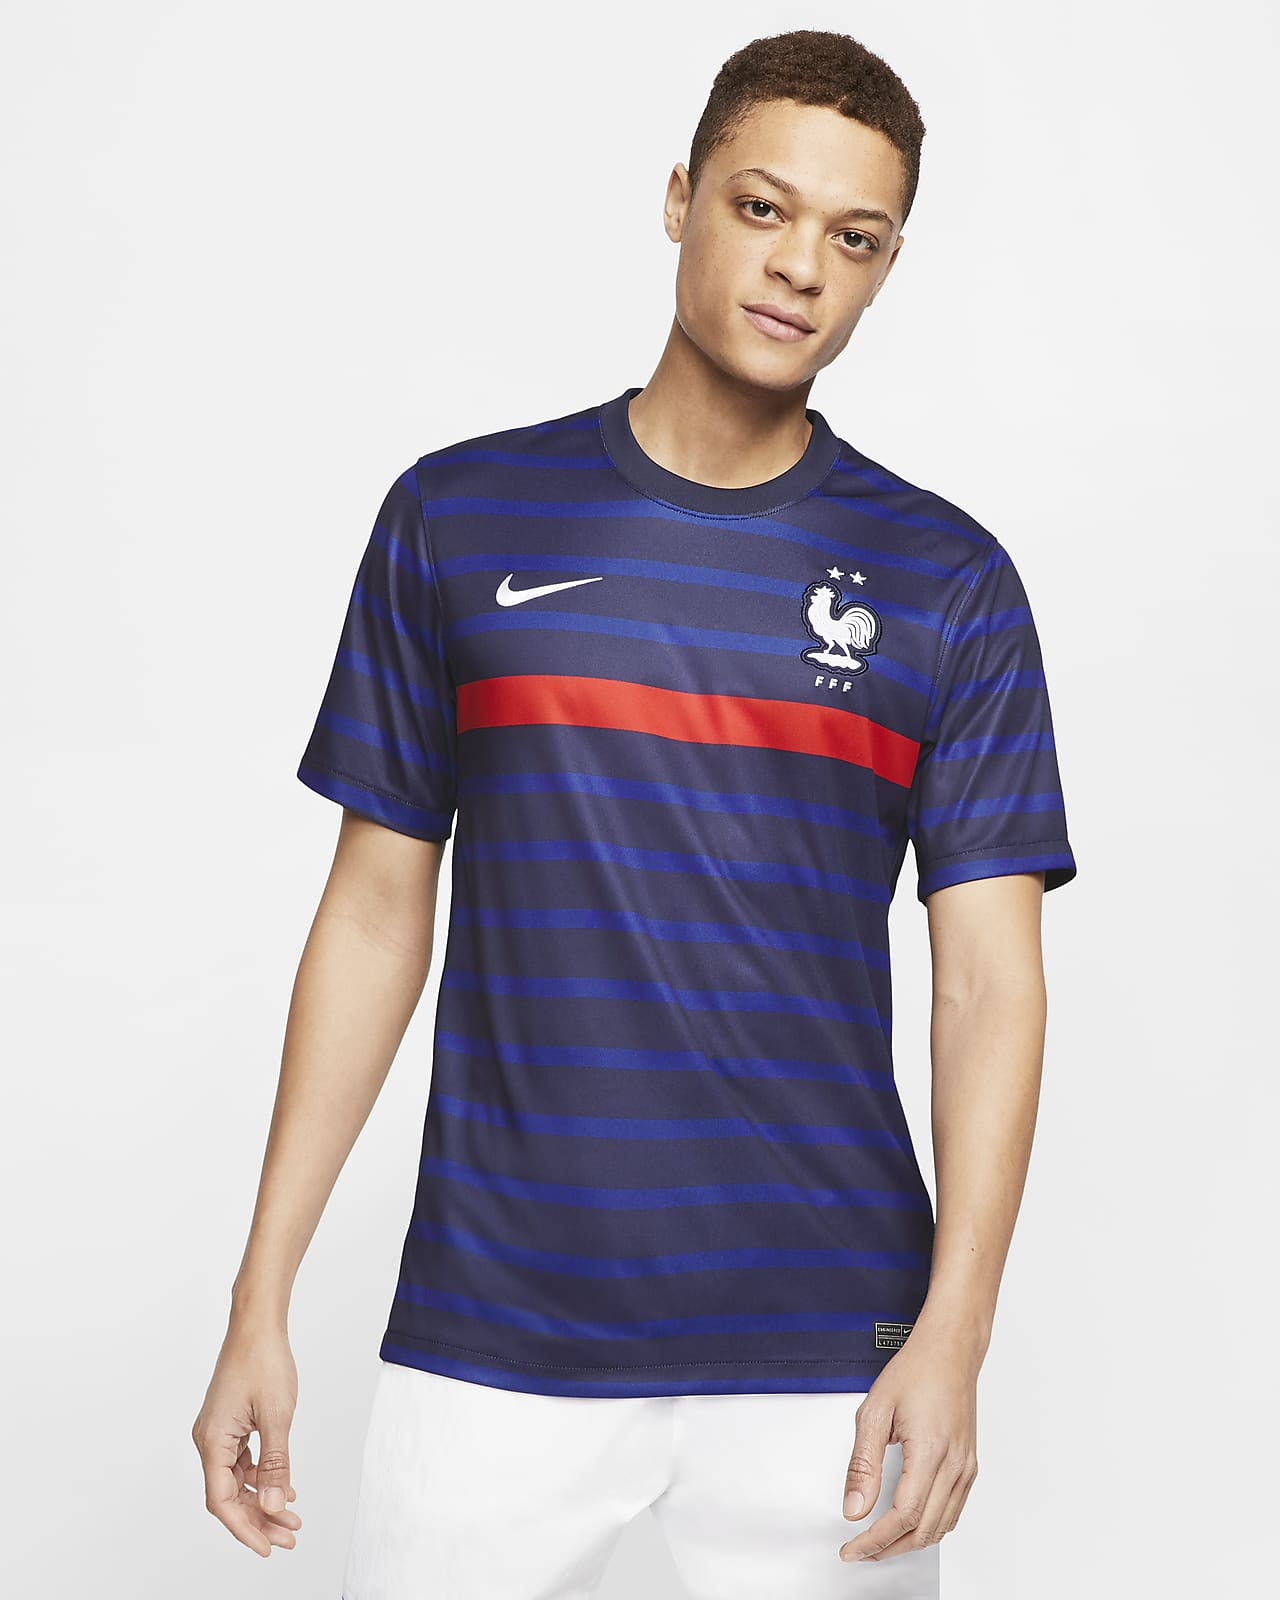 FFF 2020 Stadium Home Men's Football Shirt